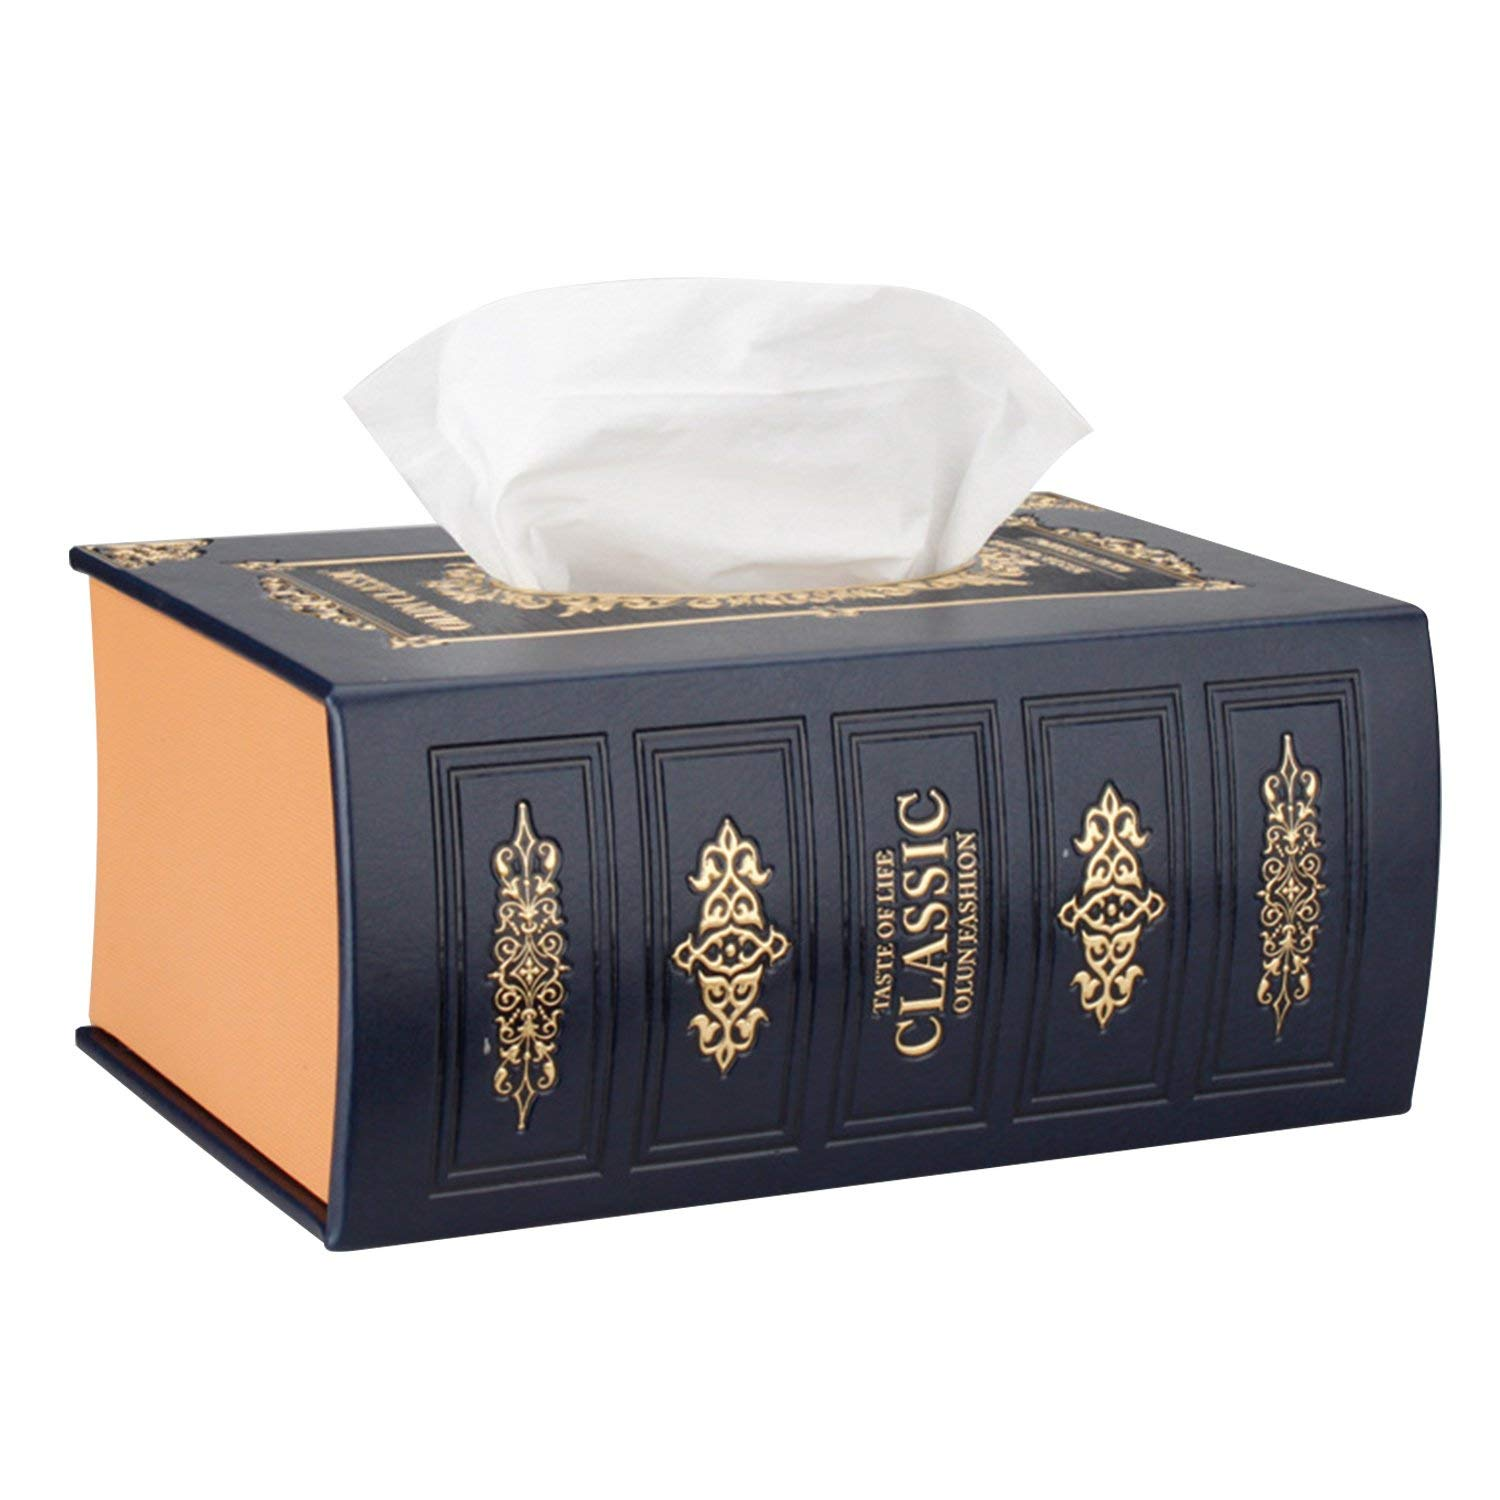 """SAVORLIVING Napkin Holder Book Shape Tissue Box PU Leather Tissue Holder Multifunctional Storage Box Antique Tissue Case for Home, Office,Coffee Shop and Car Decoration, 8.2"""" 5.7"""" (Navy Blue)"""